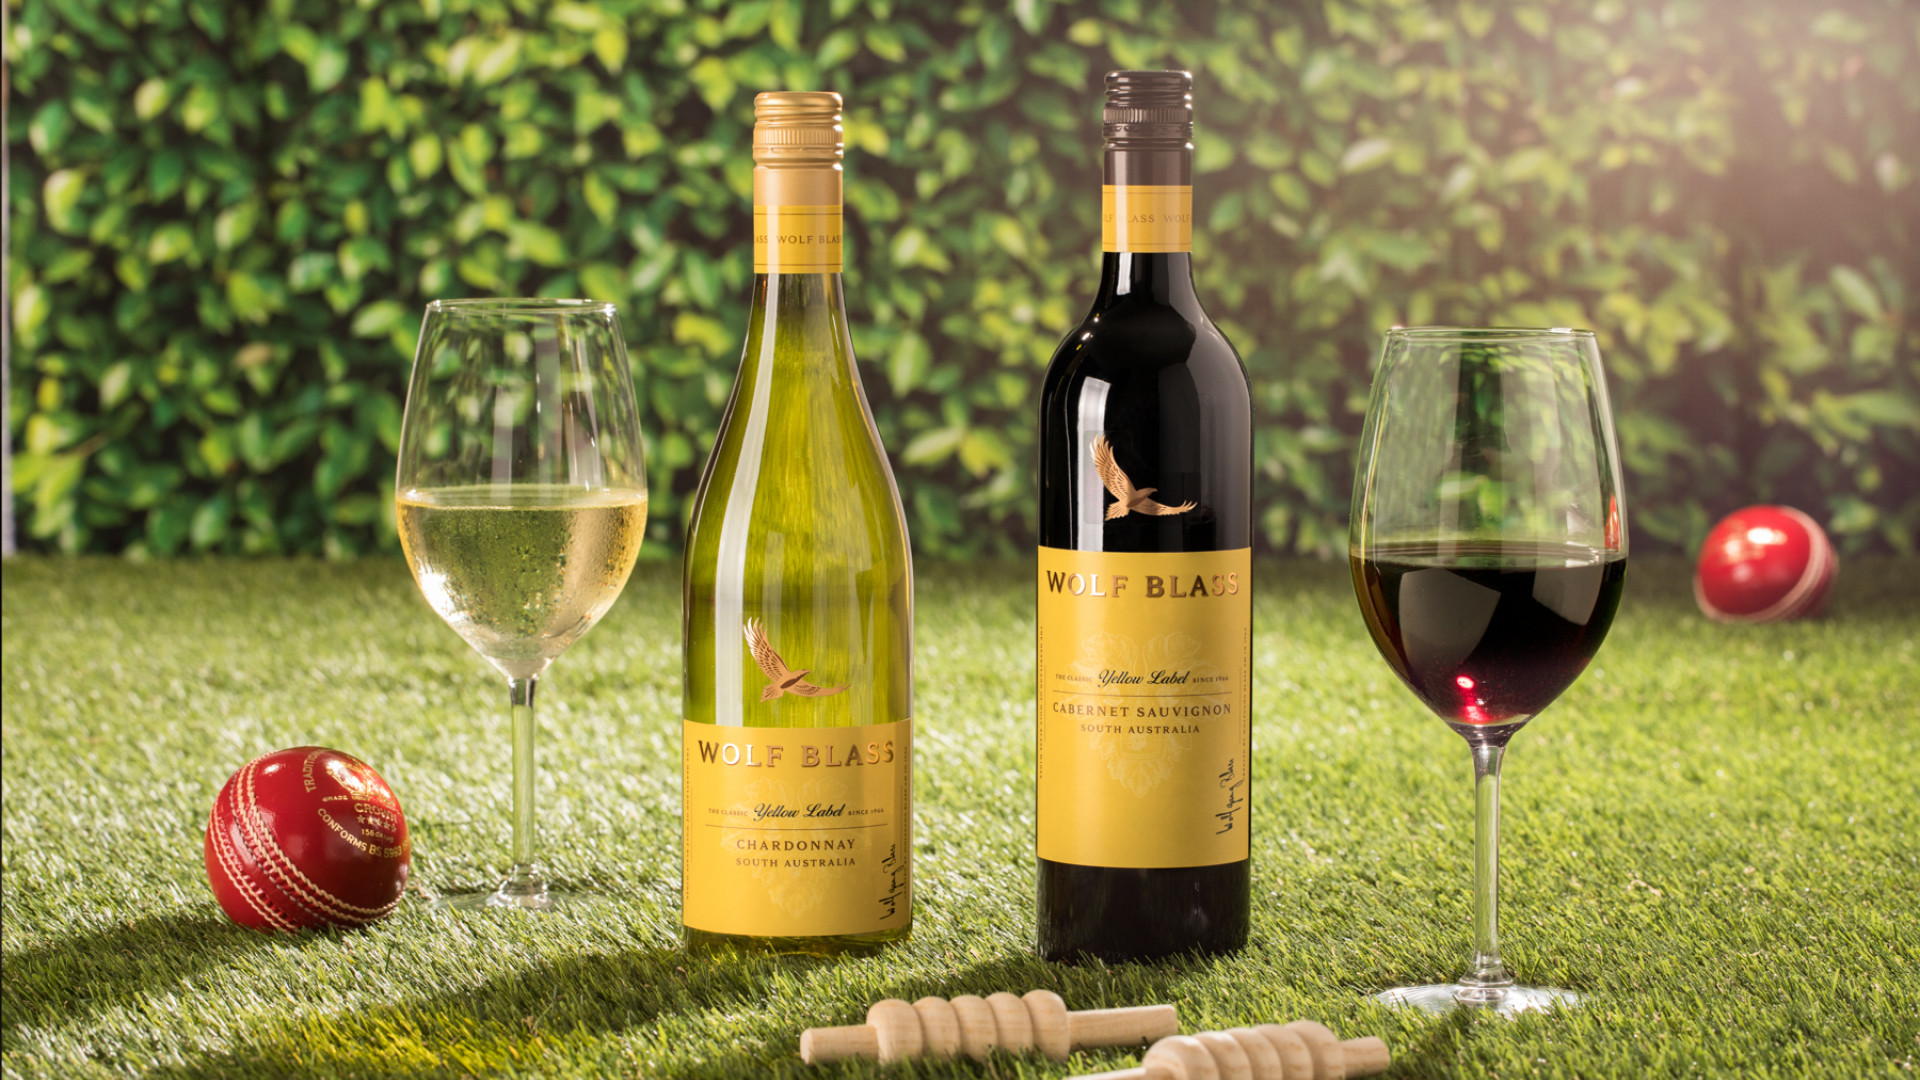 Wolf Blass wine pop-up ICC Cricket World Cup